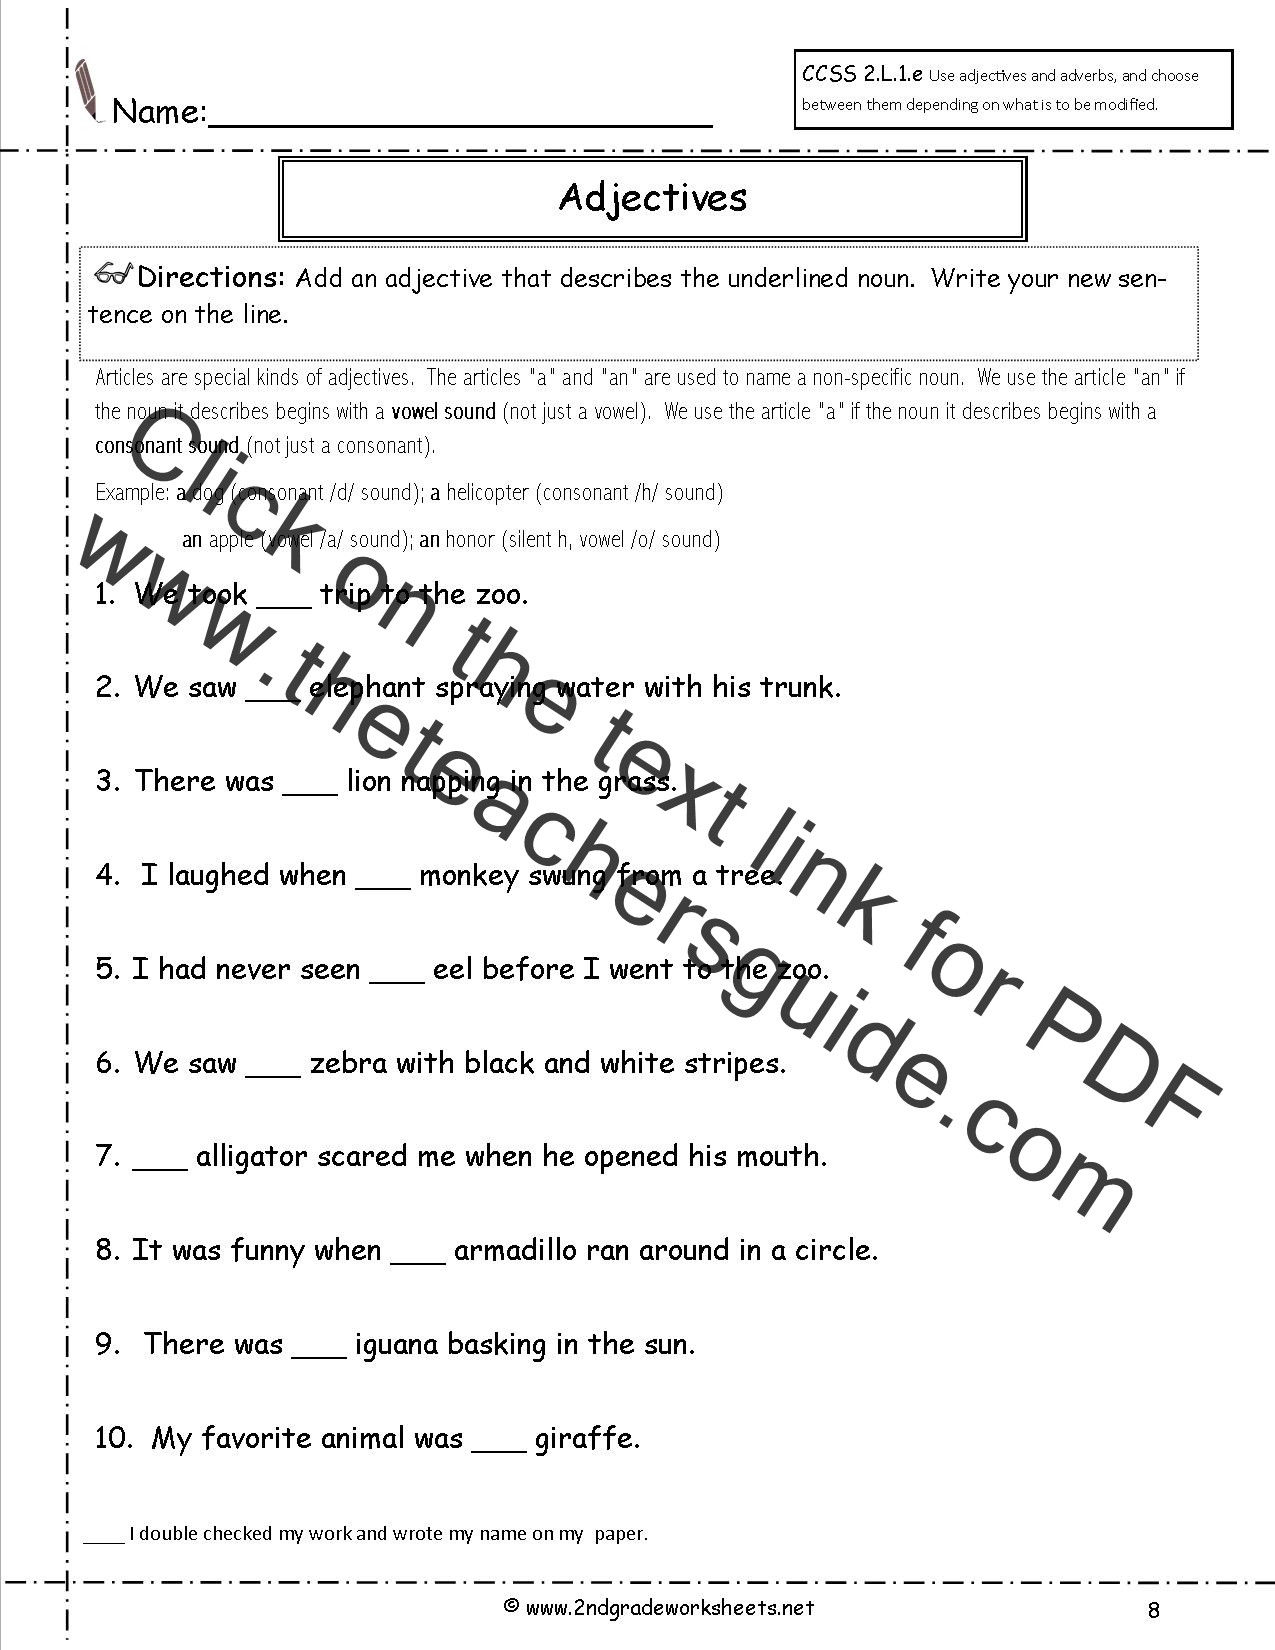 Grammar Worksheets for 2nd Grade Free Language Grammar Worksheets and Printouts